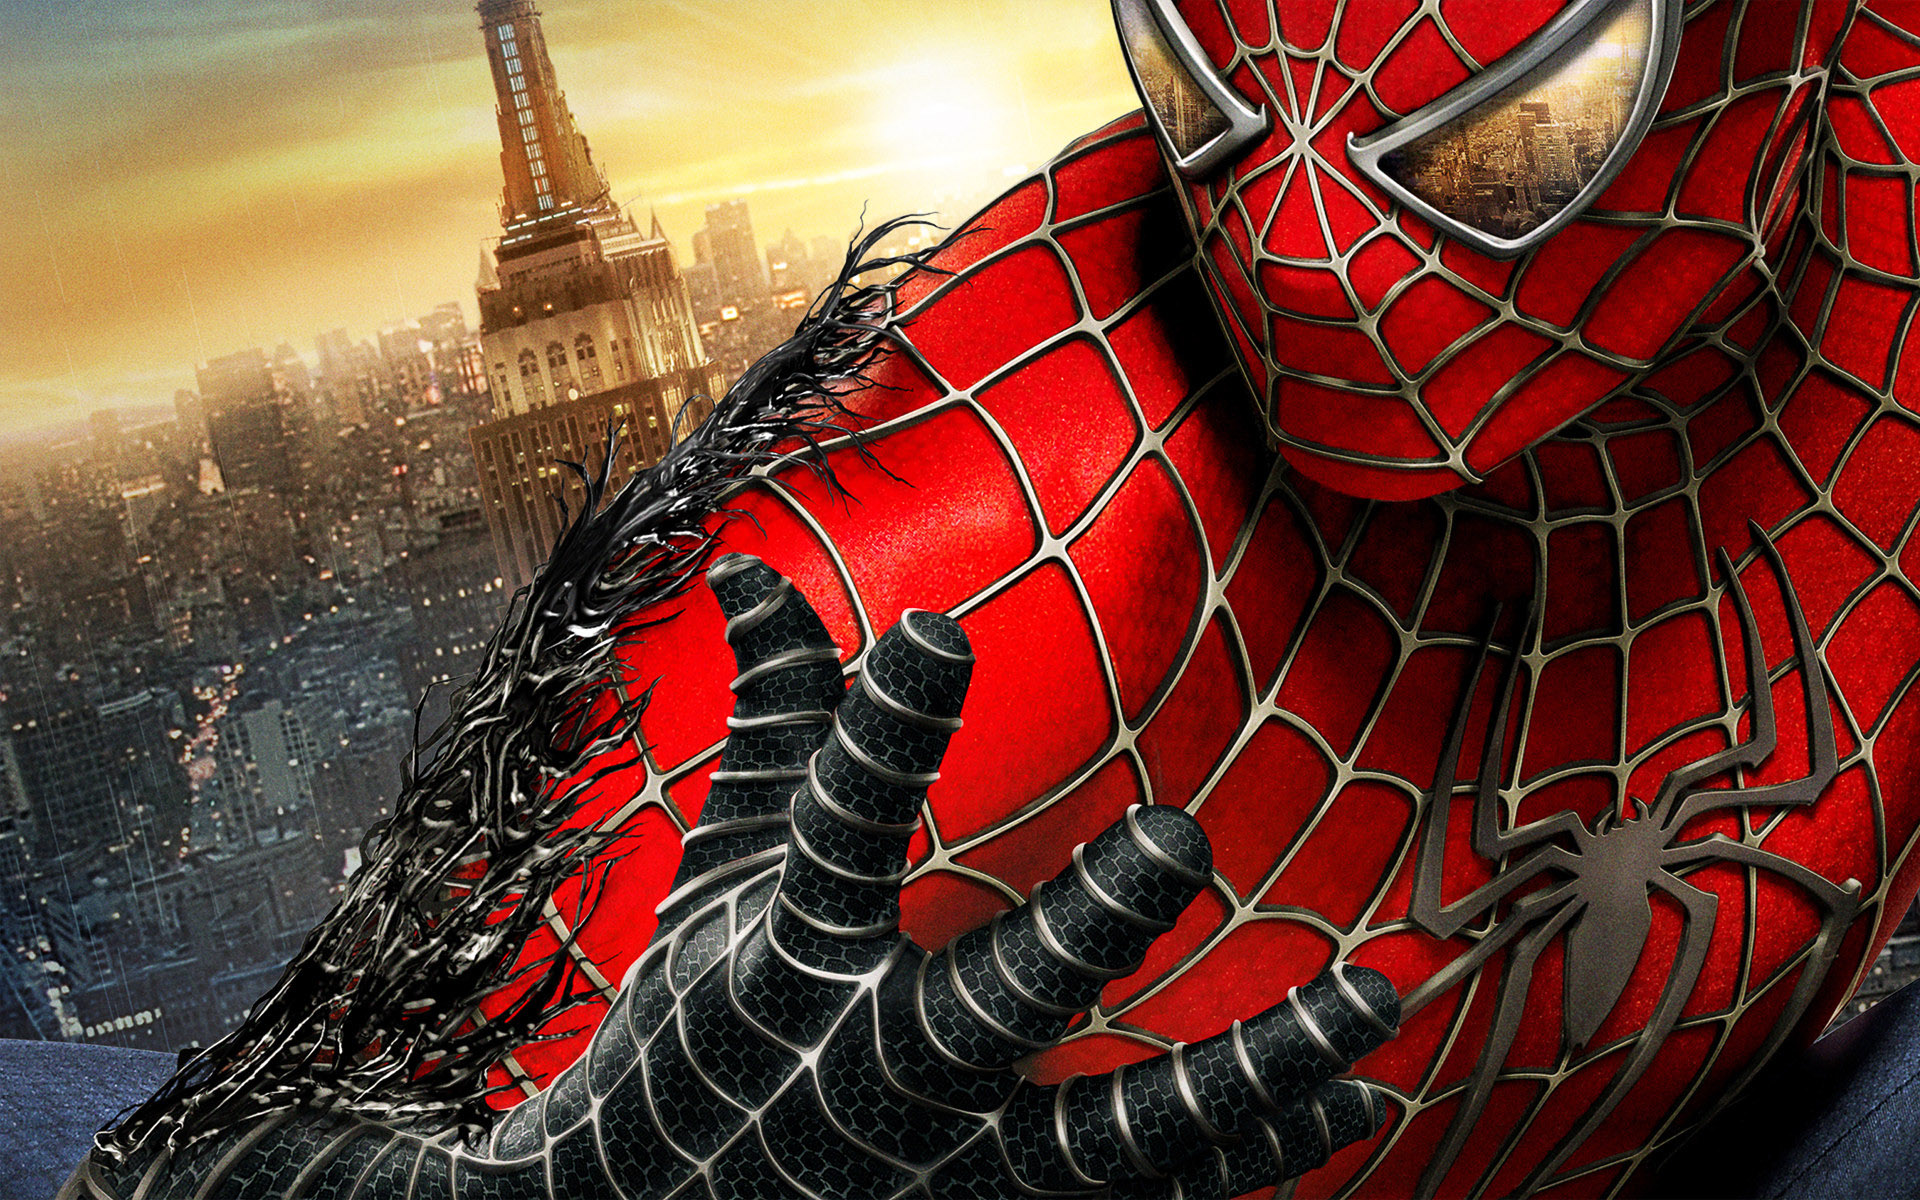 Samsung Mobile Wallpaper Hd Download Game Of Spider Man Hd Wallpaper Hd Latest Wallpapers